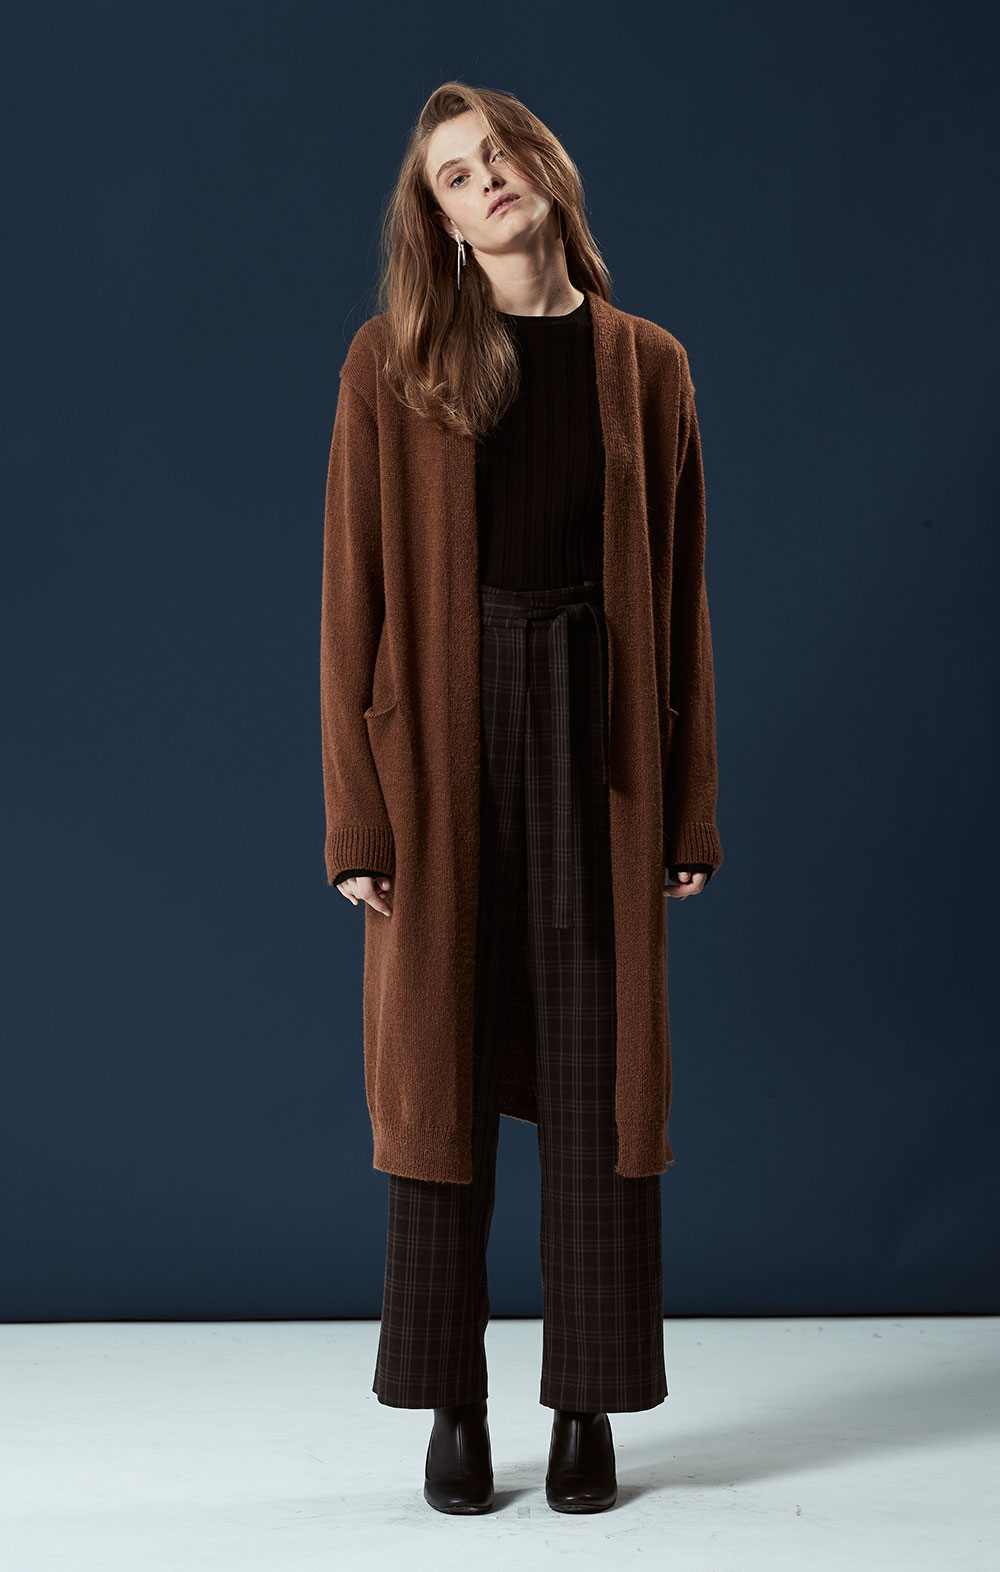 Alpaca-blend Long Cardigan FBK092-BRN Long Sleeve Ribbed Pullover FBK012-BLK Tie Front Wide-leg Pants FBP035-BRN